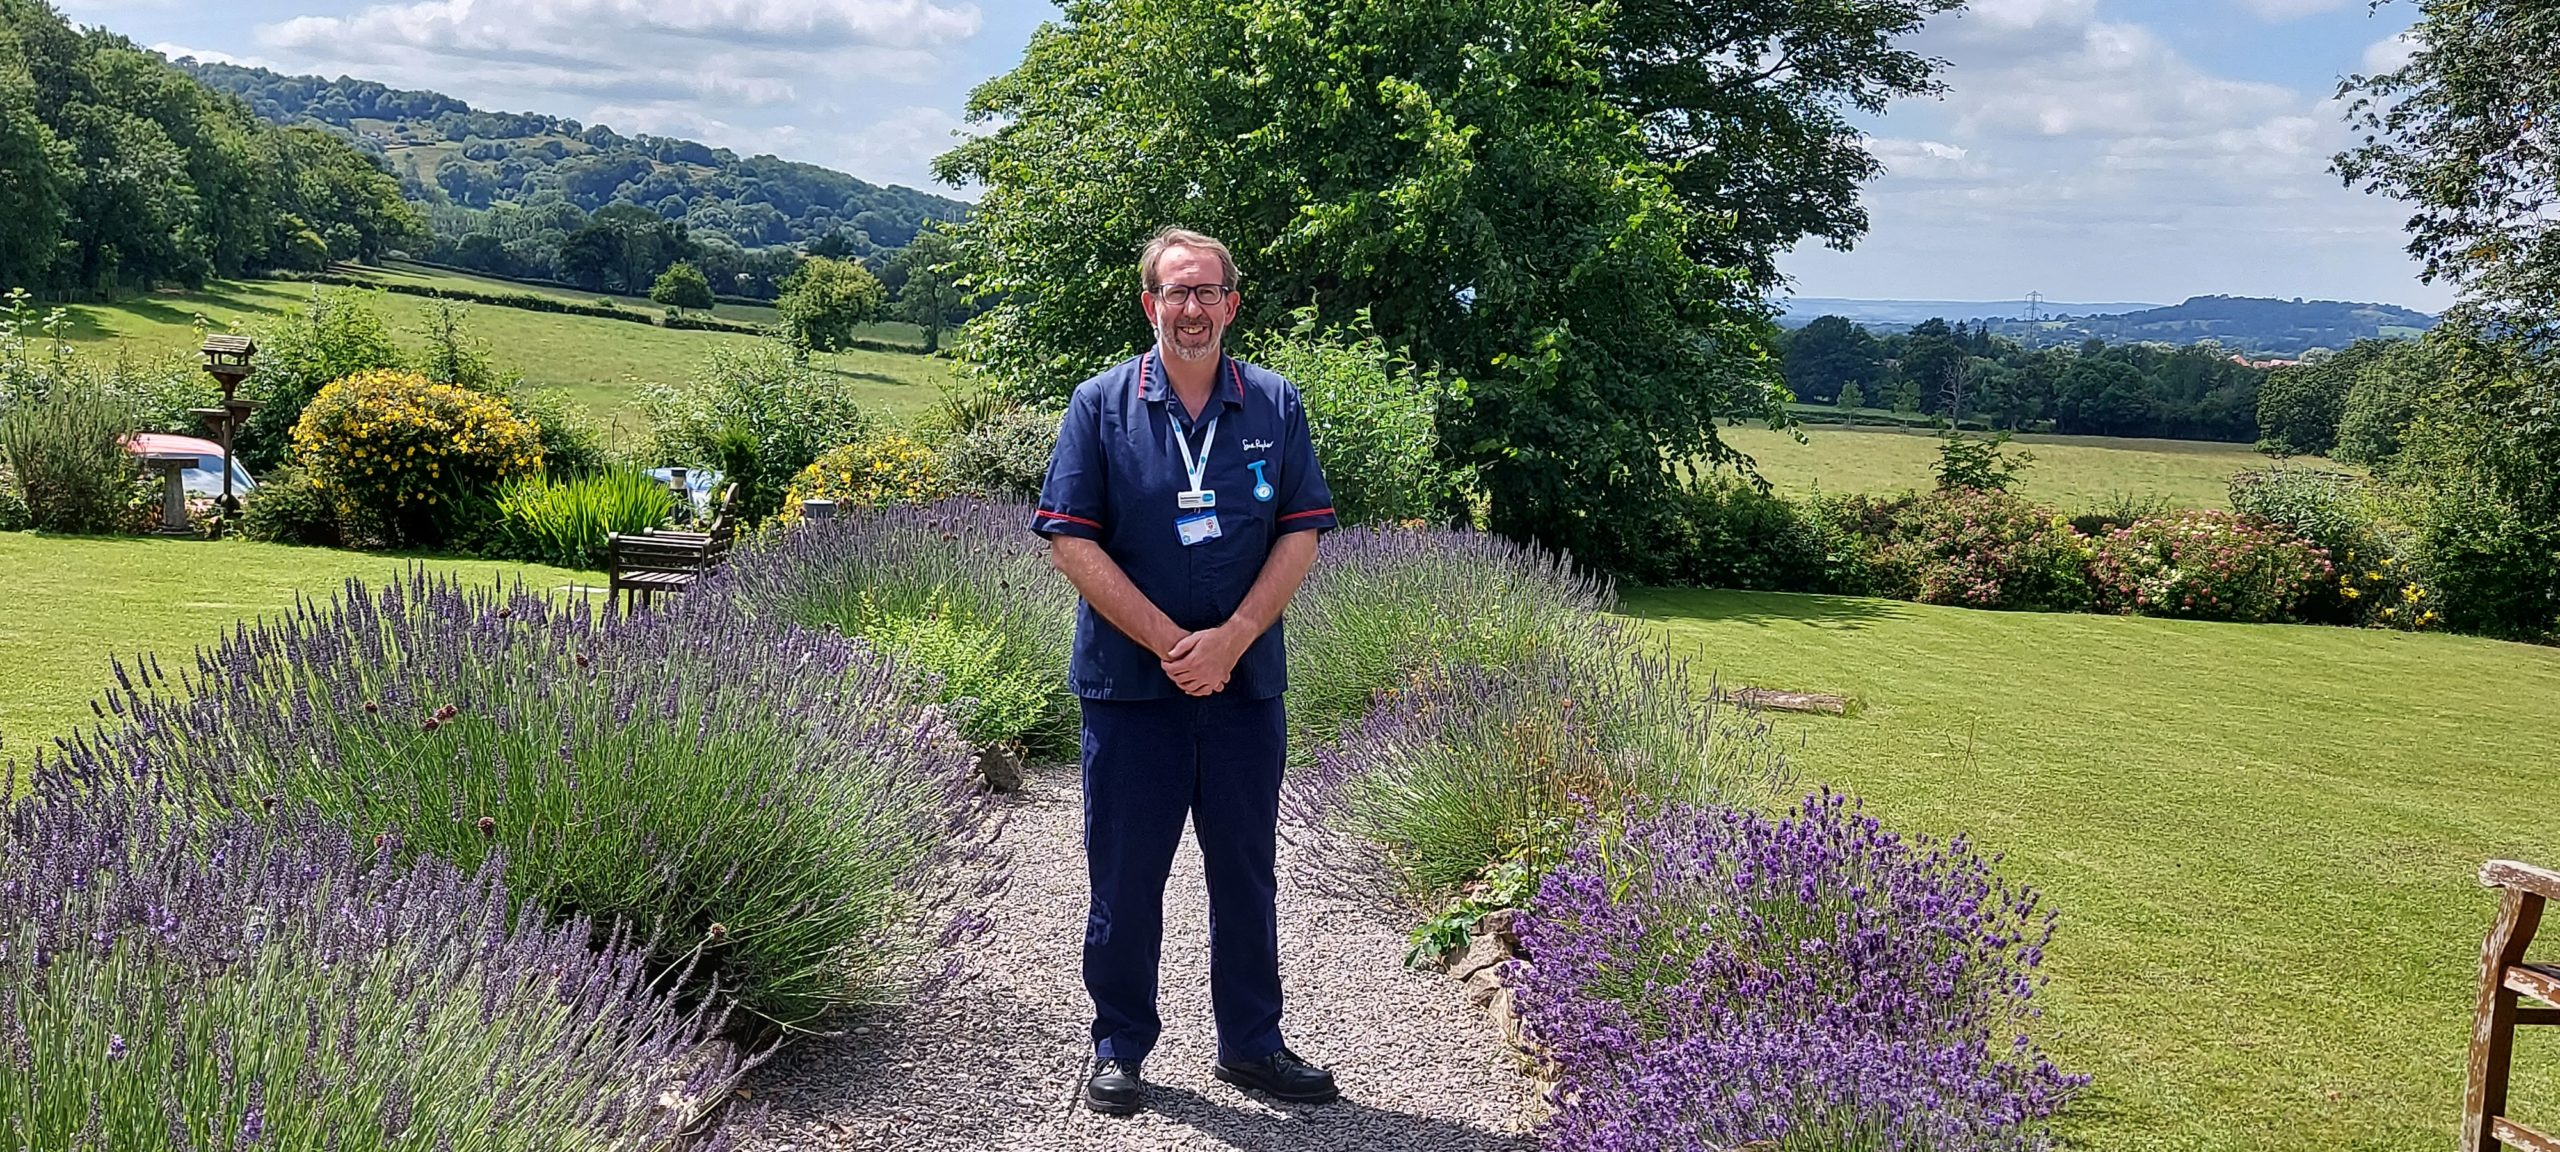 Sue Ryder hospice welcomes new Head of Clinical Services